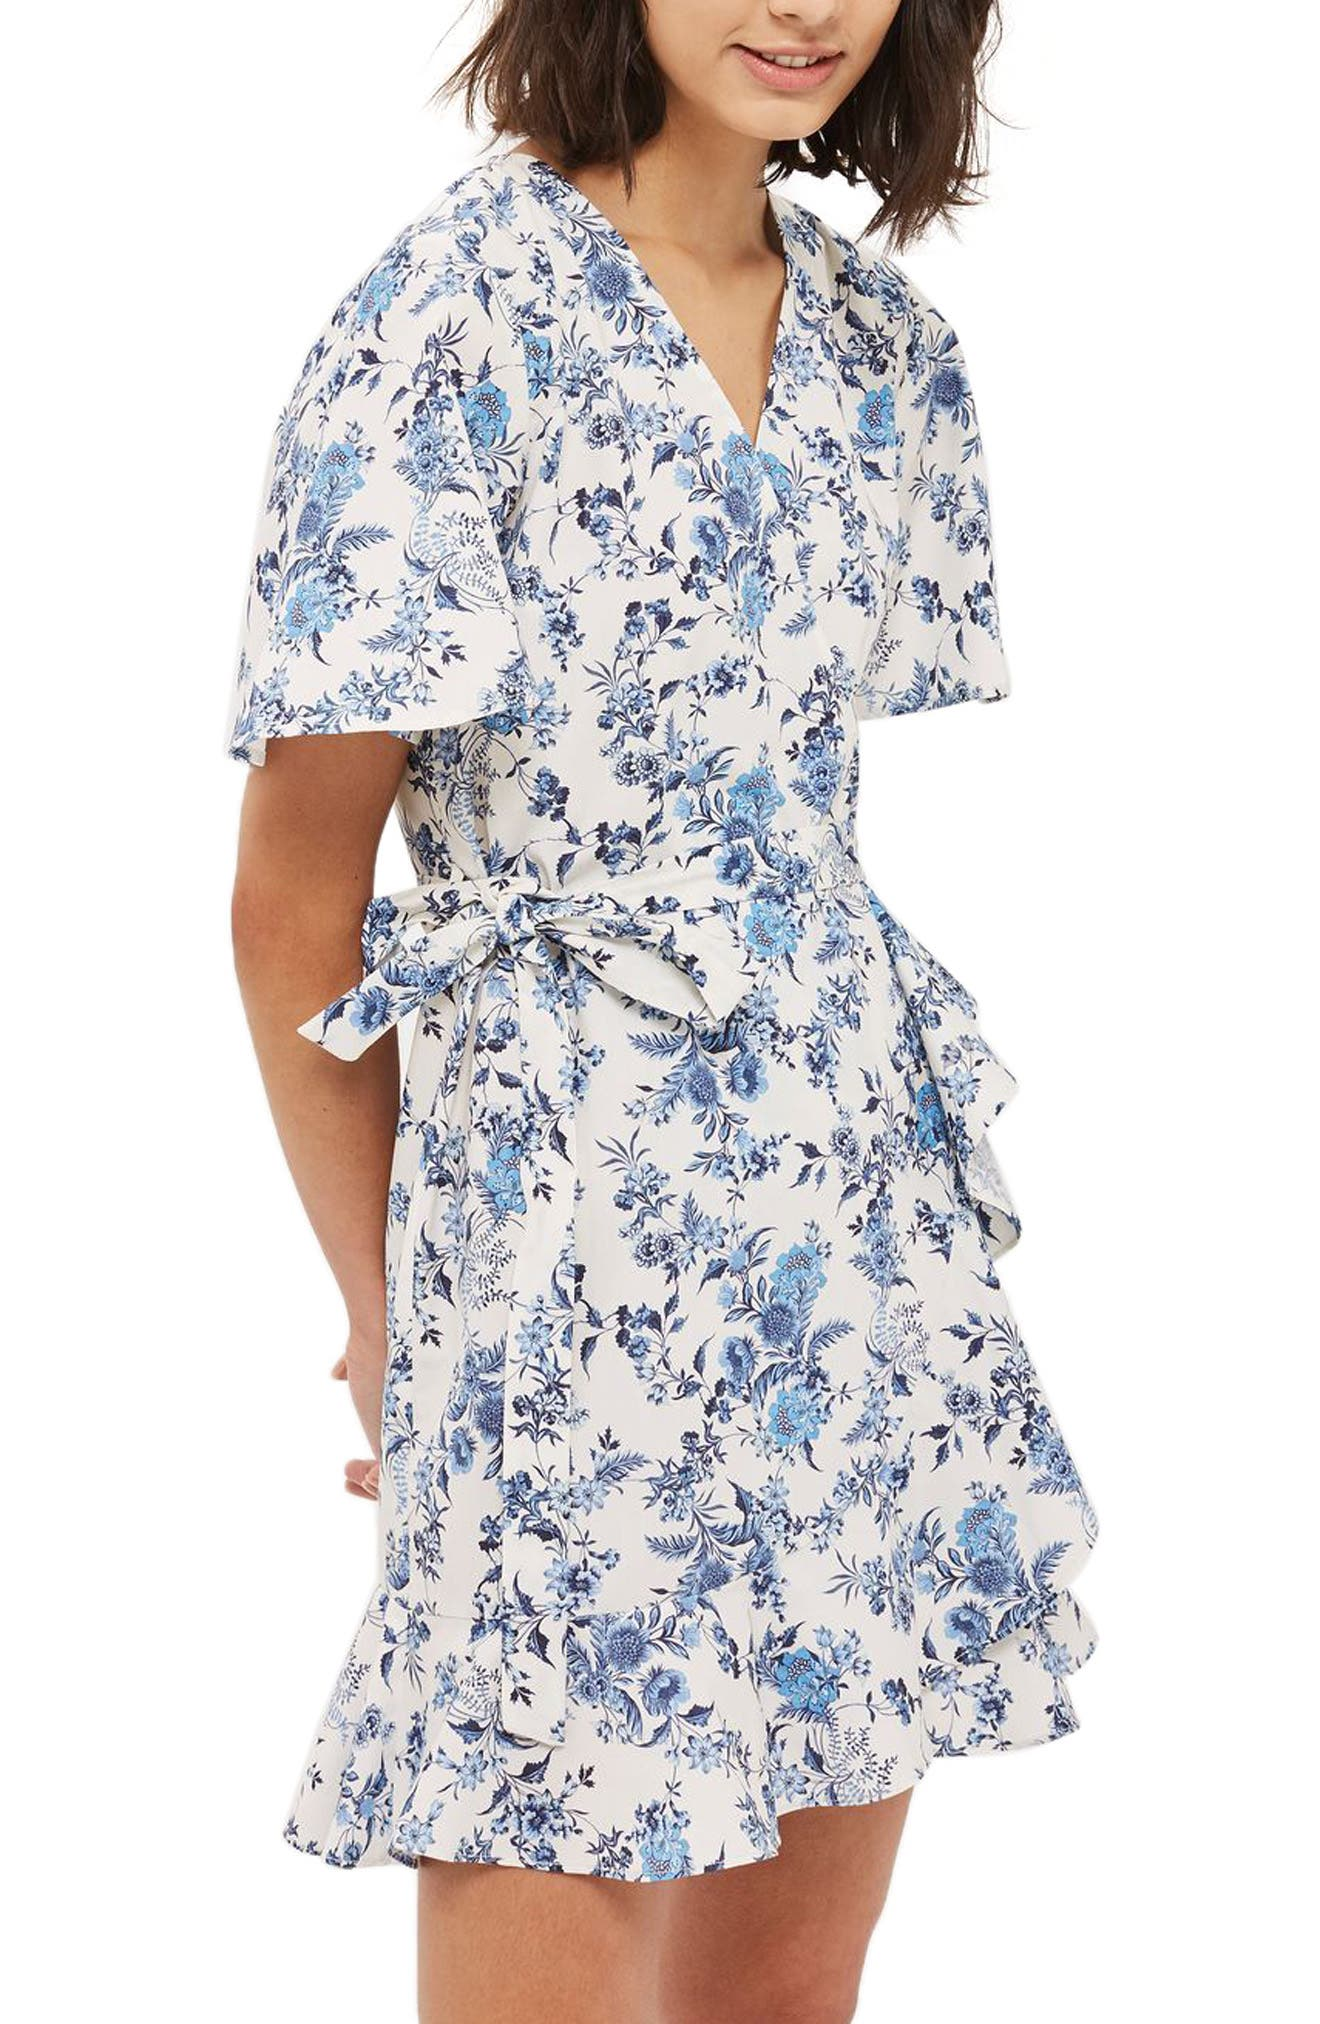 Topshop China Toile Wrap Dress